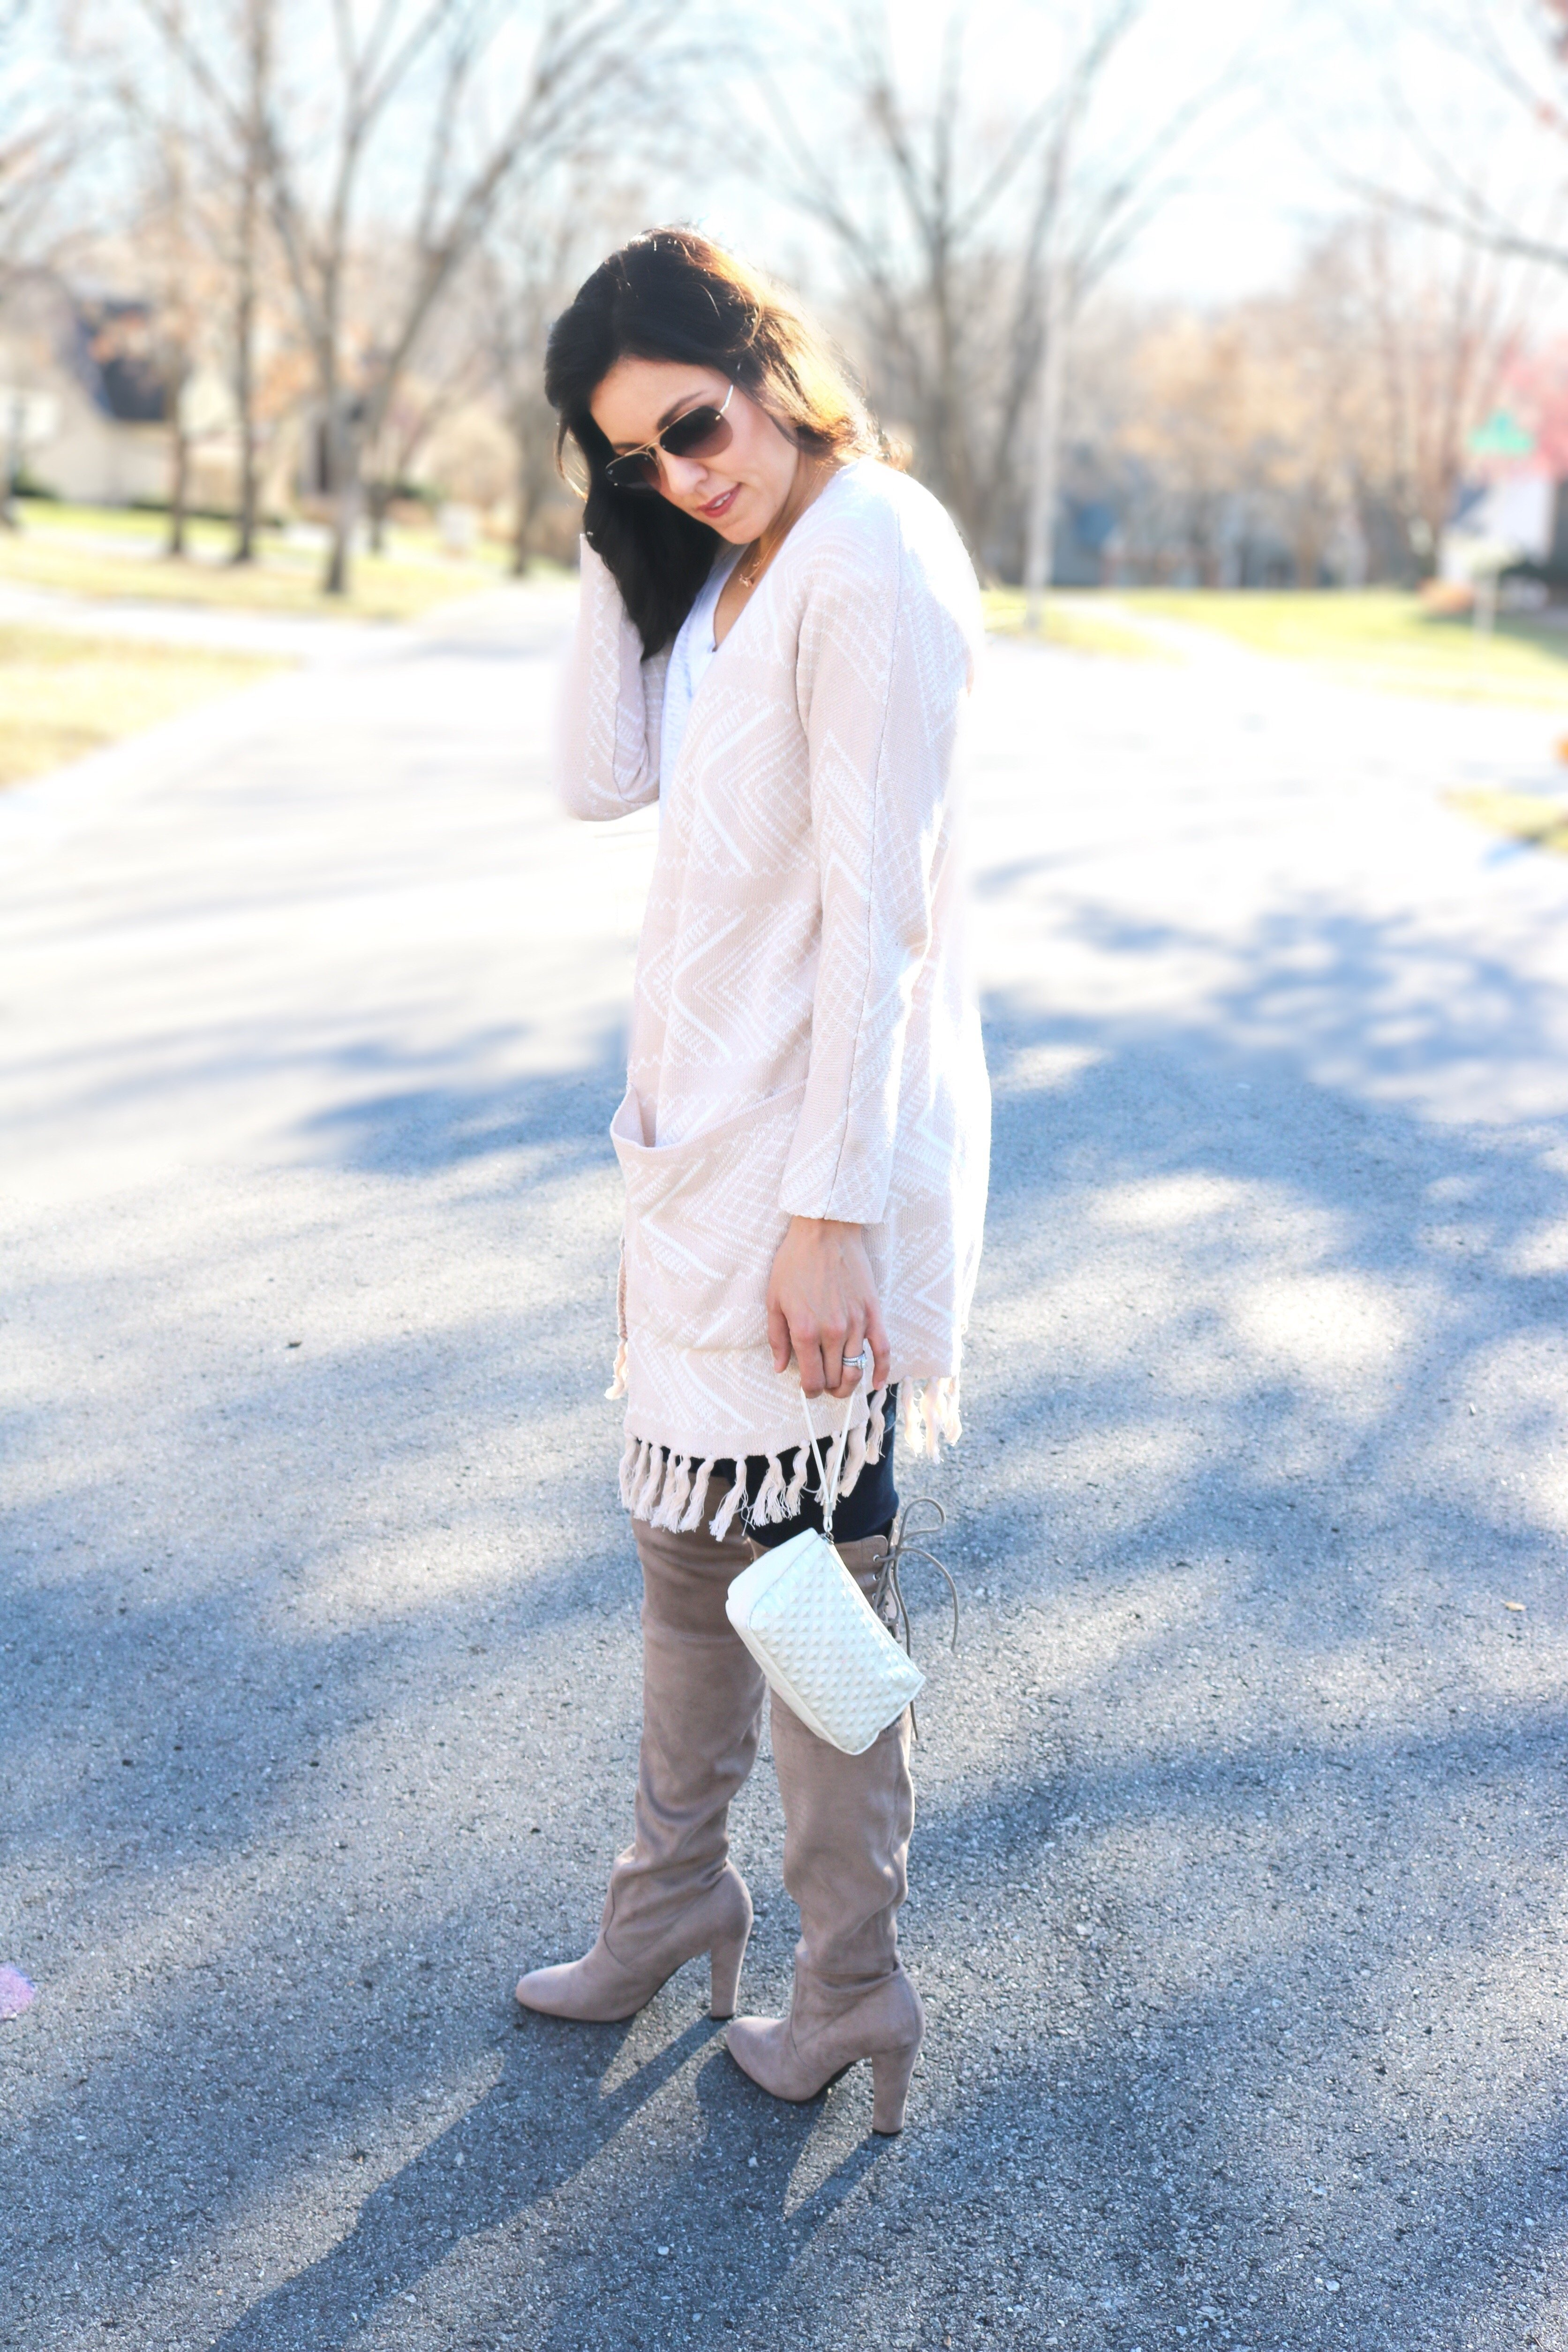 How to style a cardigan | fall and winter style ideas | fall fashion tips | cool weather fashion | styling over the knee boots | neutral fringe